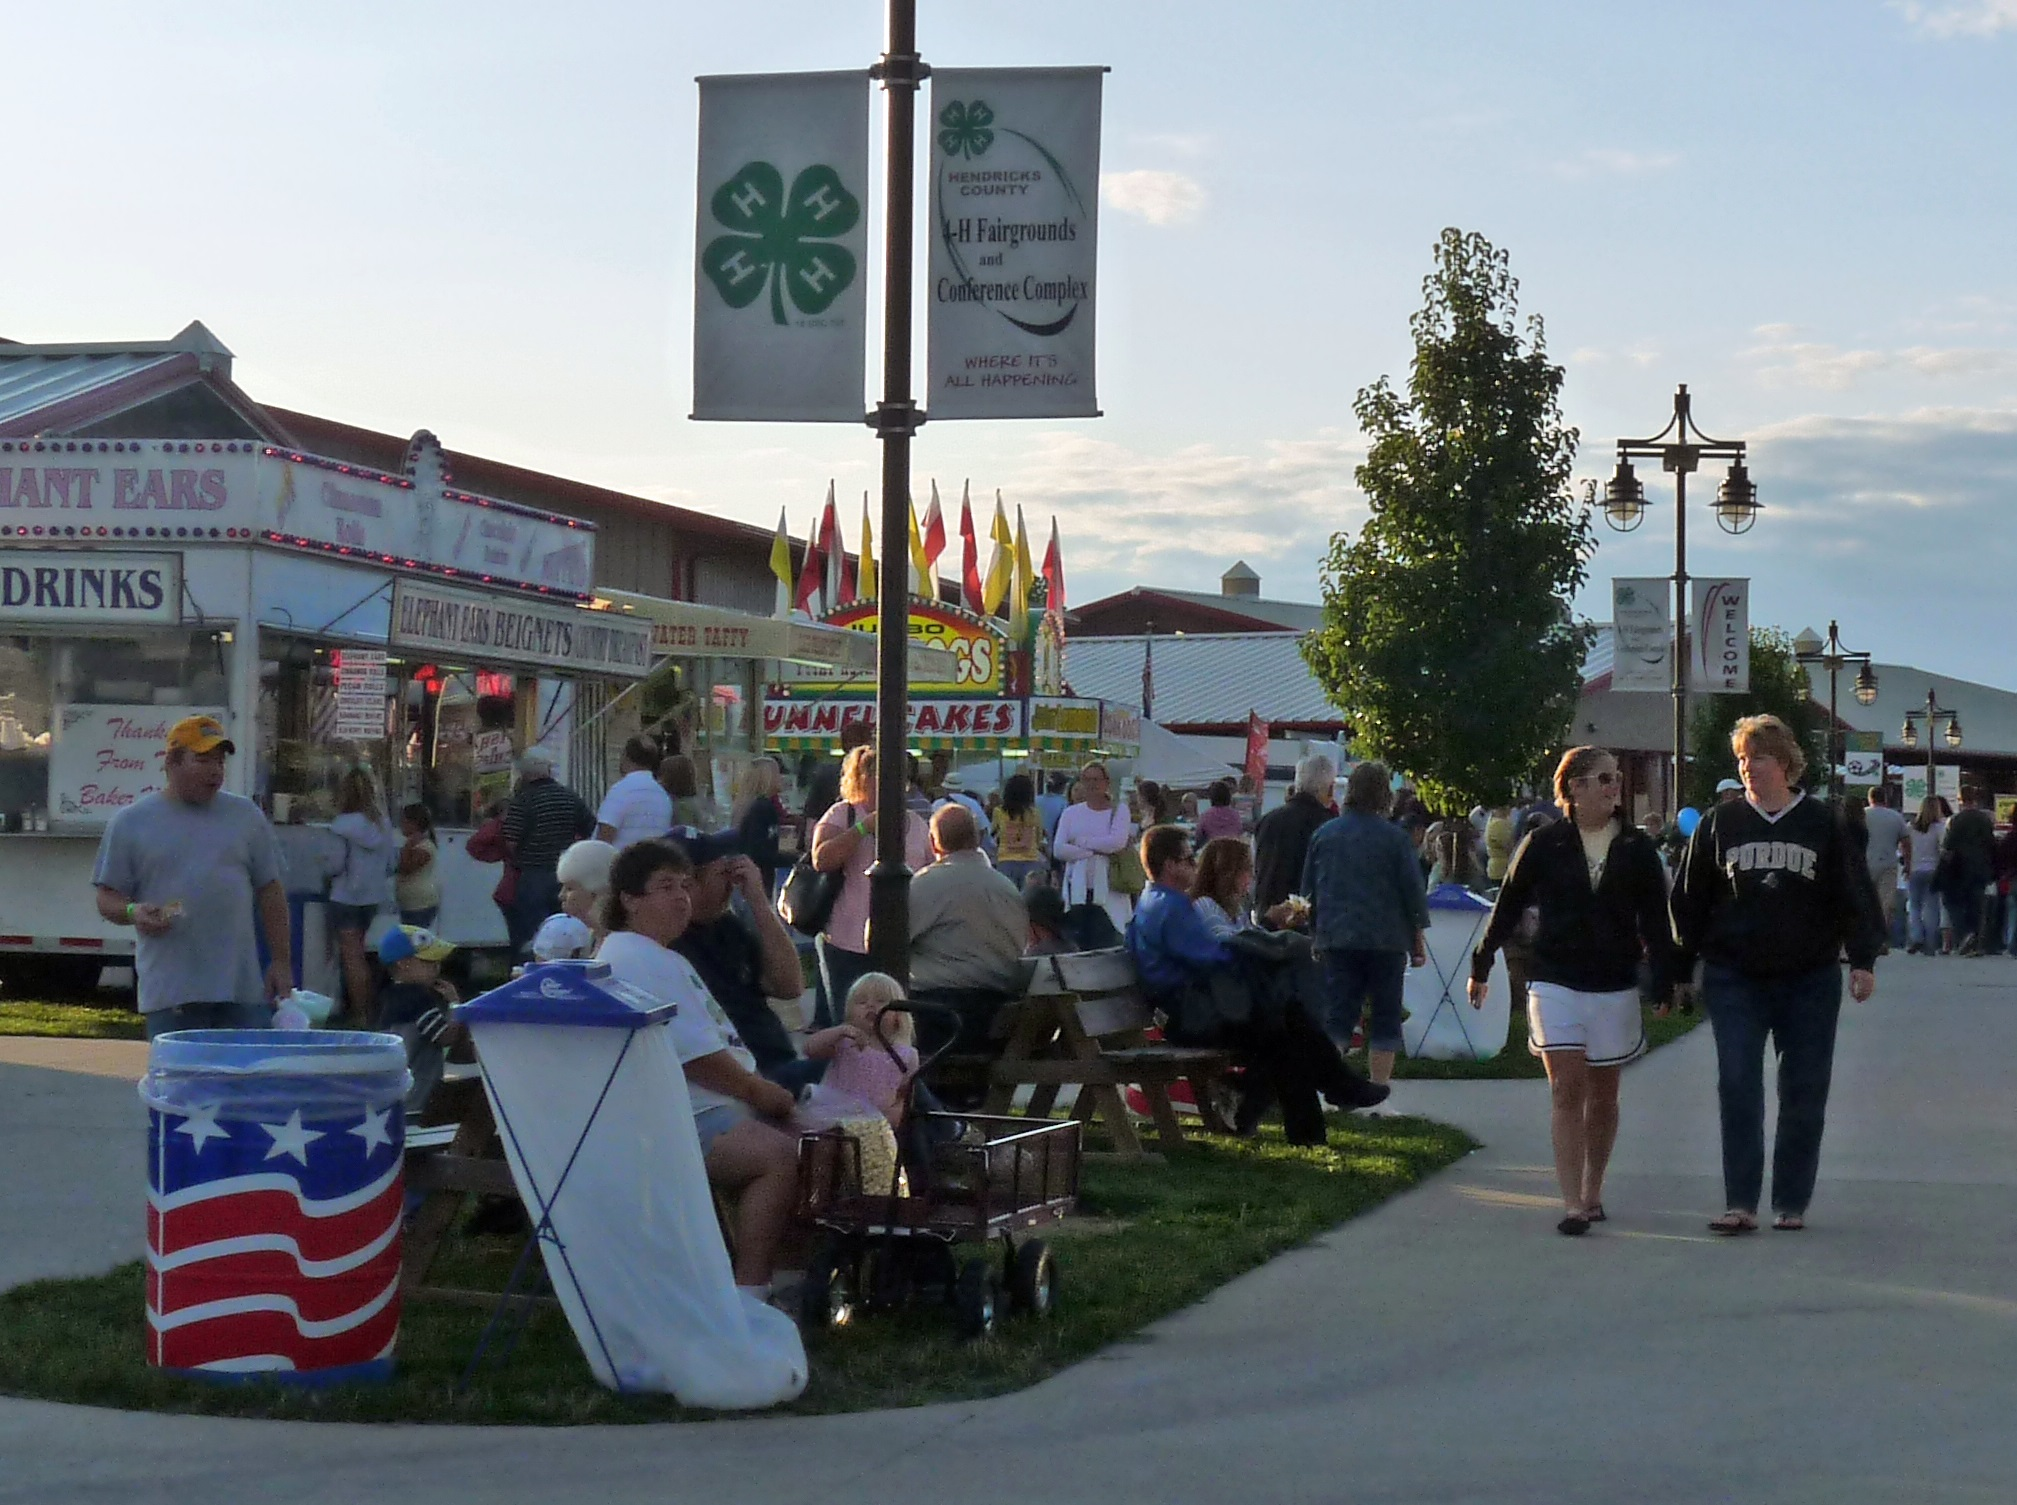 The Hendricks County 4-H Fair opens on Sunday!